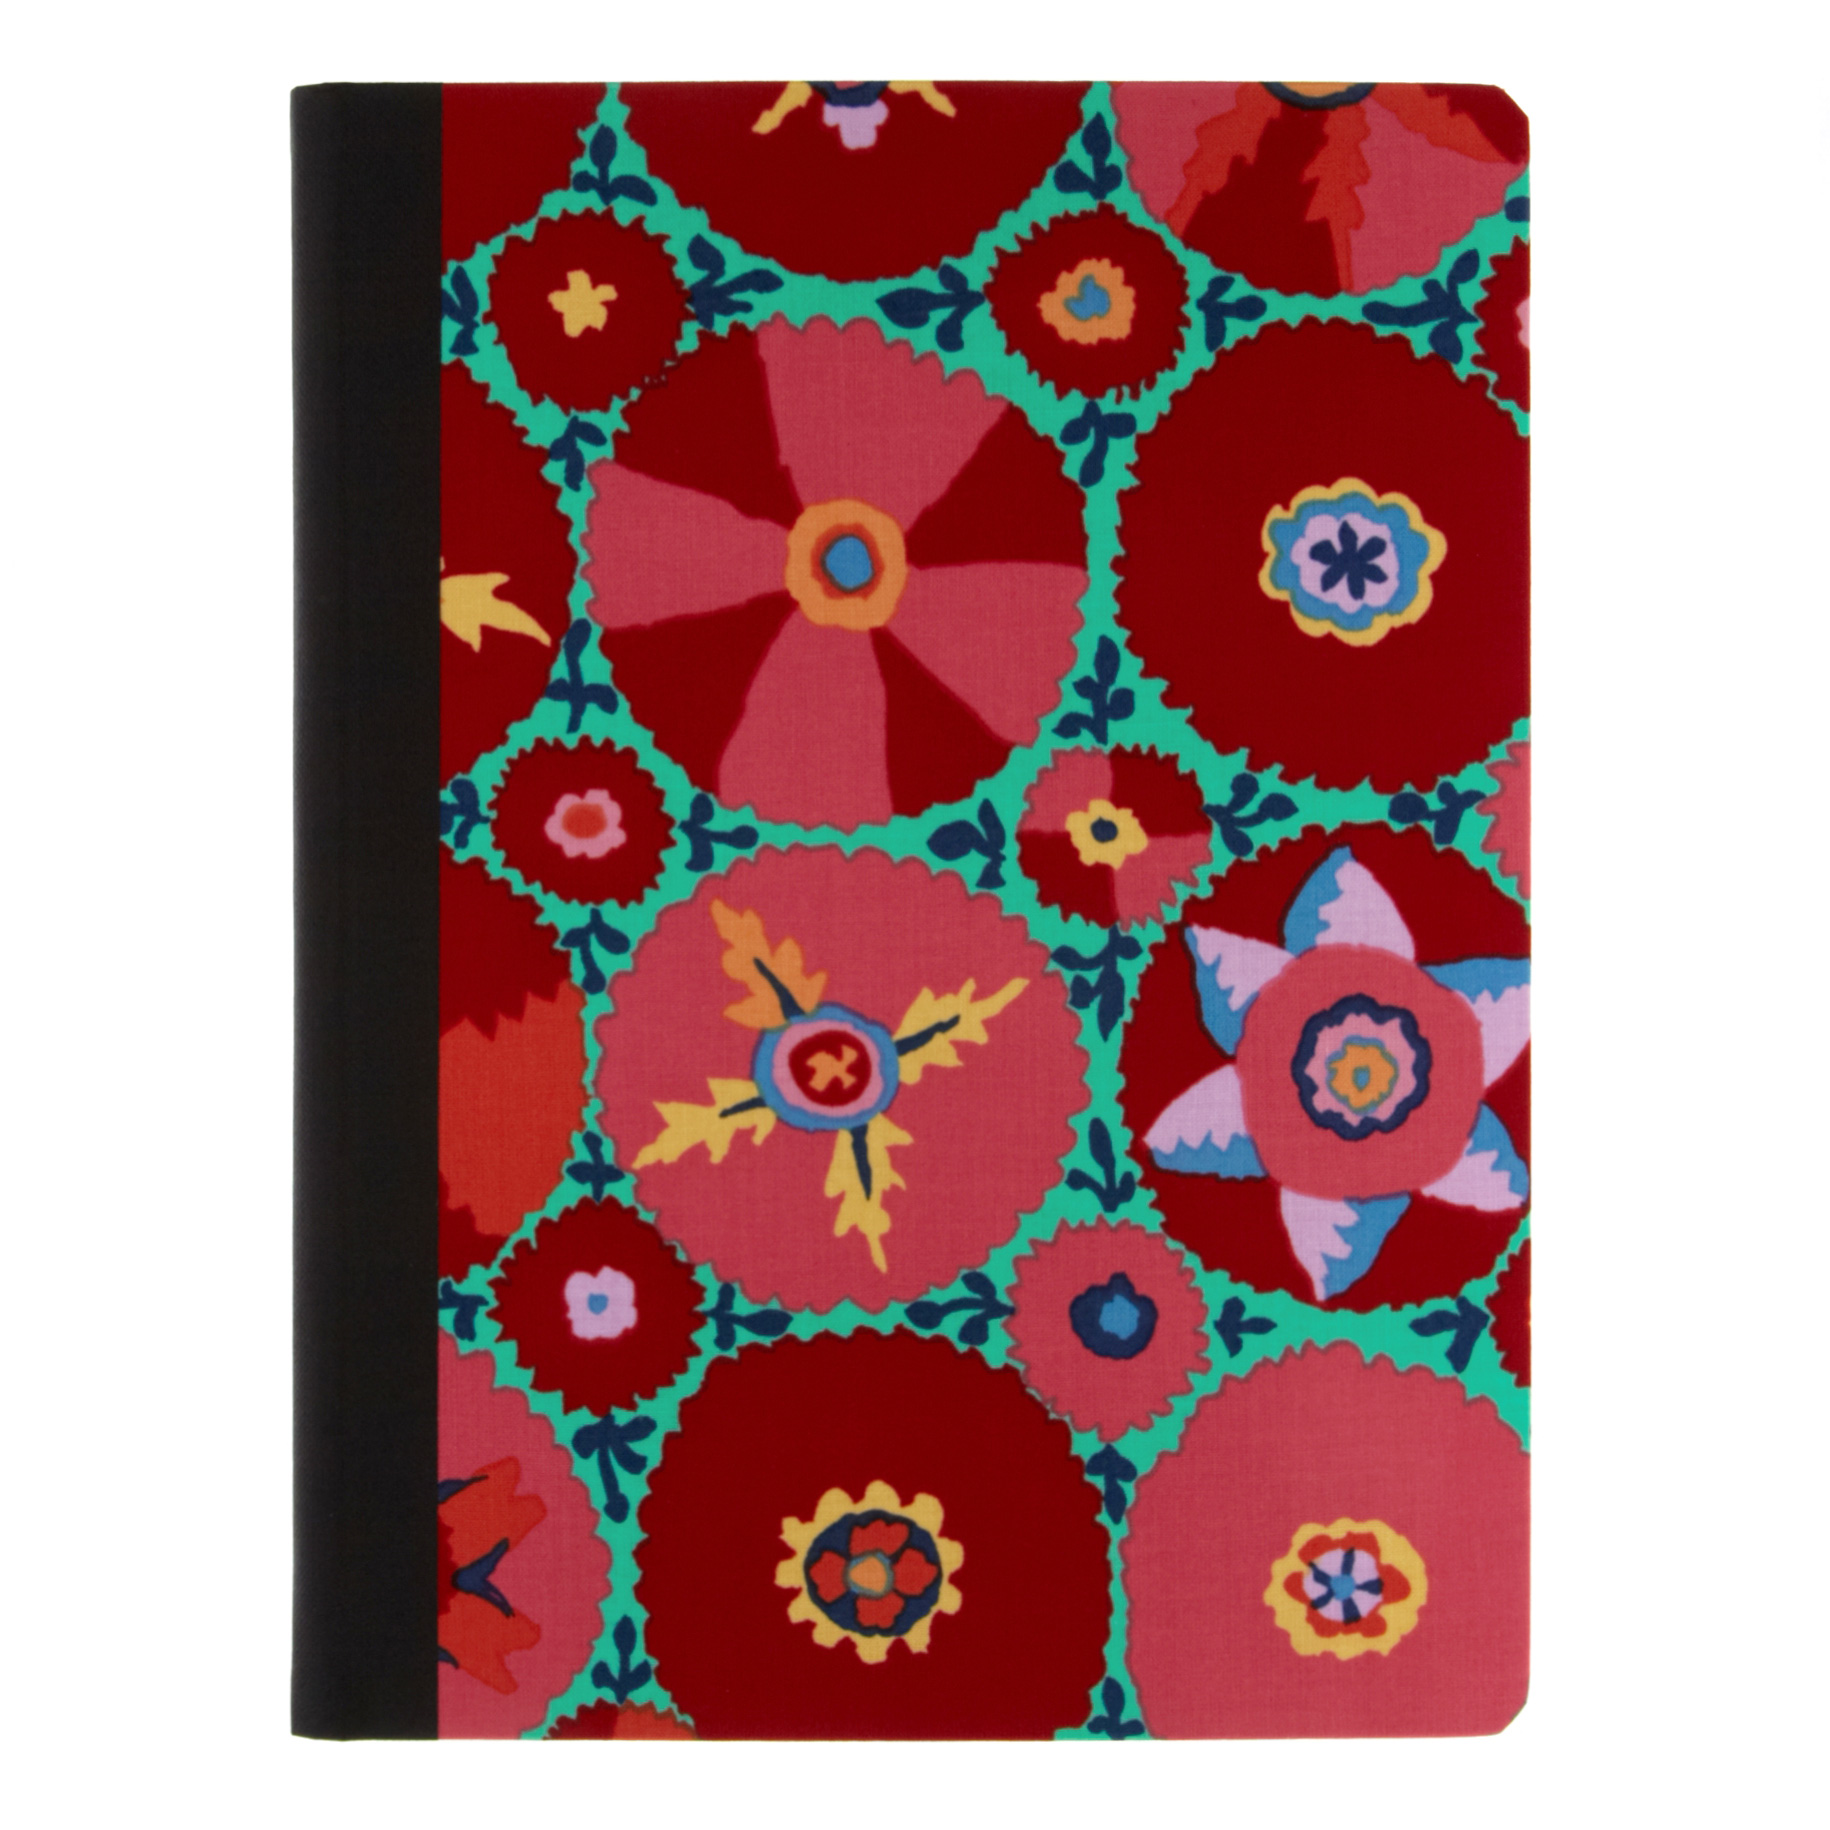 Lifestyle Fabric Covered Composition Book